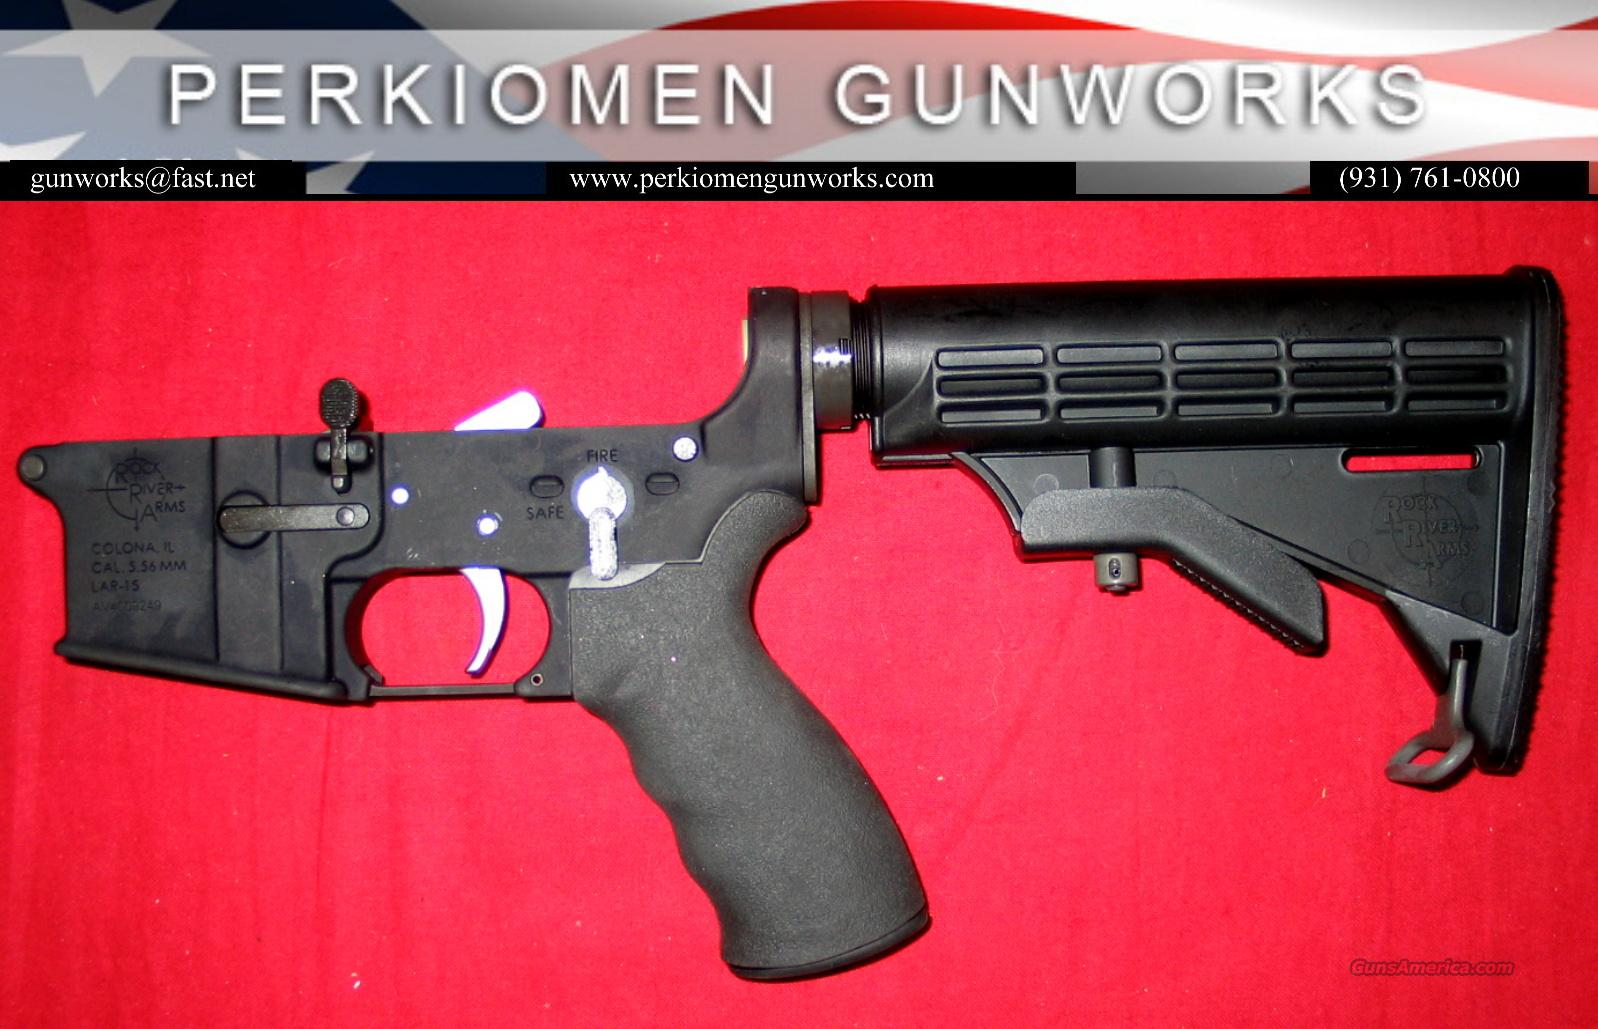 LAR-15 NM Complete Lower w/extras, Chrome Trigger, Tact Stock+- NEW  Guns > Rifles > Rock River Arms Rifles